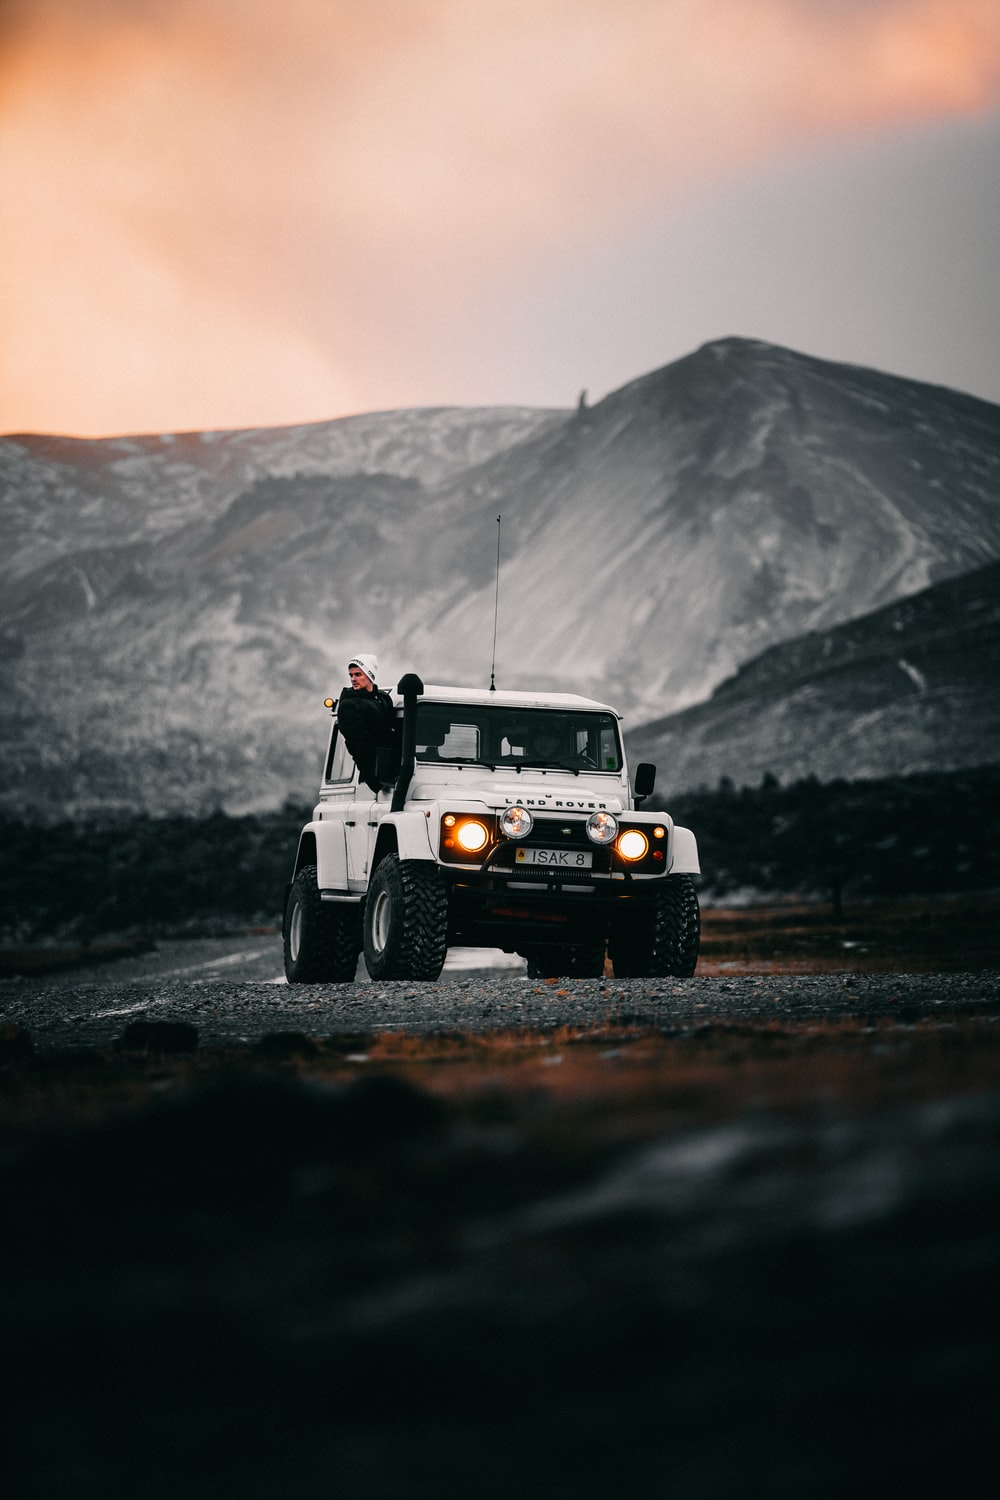 man in black jacket and pants standing beside white jeep wrangler on road during daytime